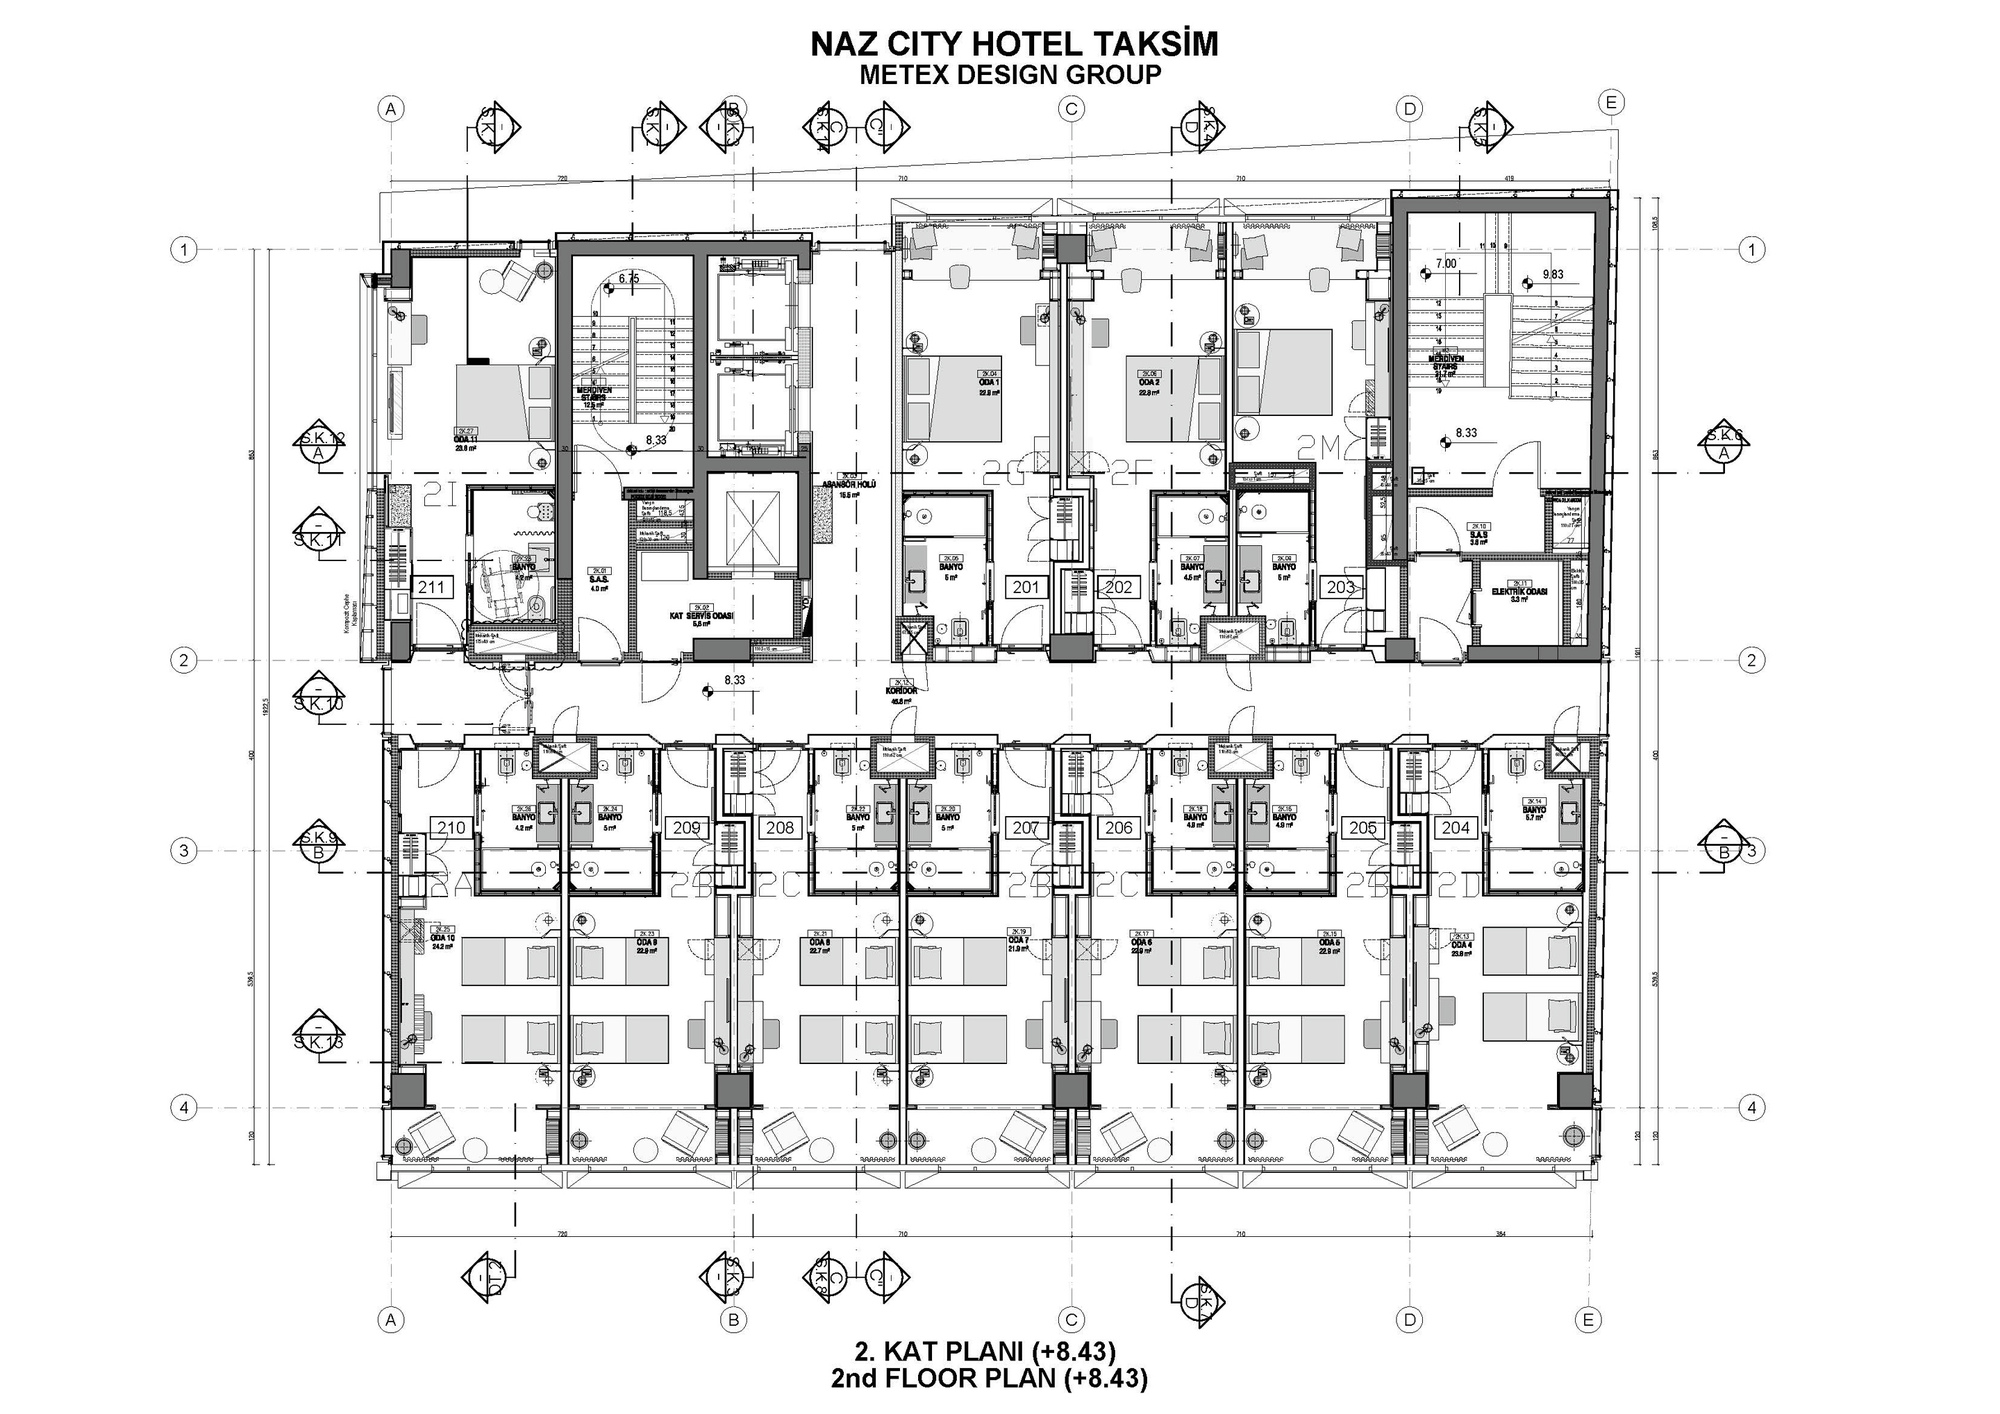 Gallery of naz city hotel taksim metex design group 39 for City hotel design